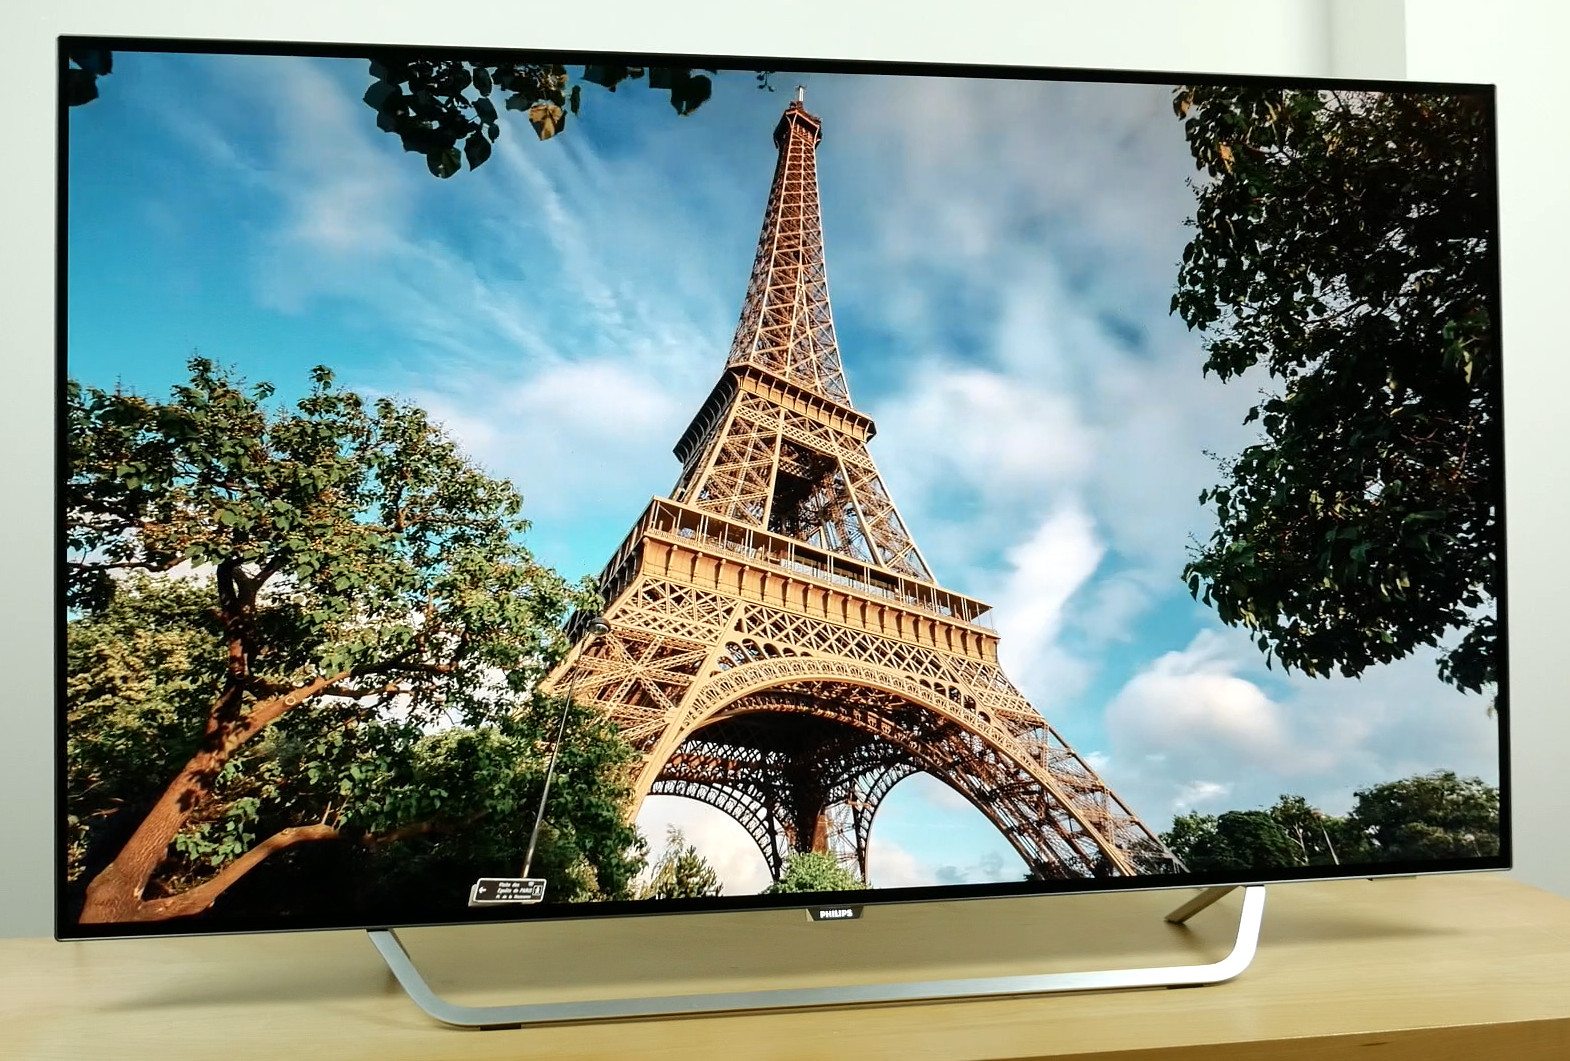 Philips 9002 55pos9002 Ambilight Oled Tv Review As Well Samsung Circuit Board Schematic Also New To The Party Is A P5 Processor That Carries Out Picture Processing In Very Specific Steps Elevate Quality Especially From Ropey Sources